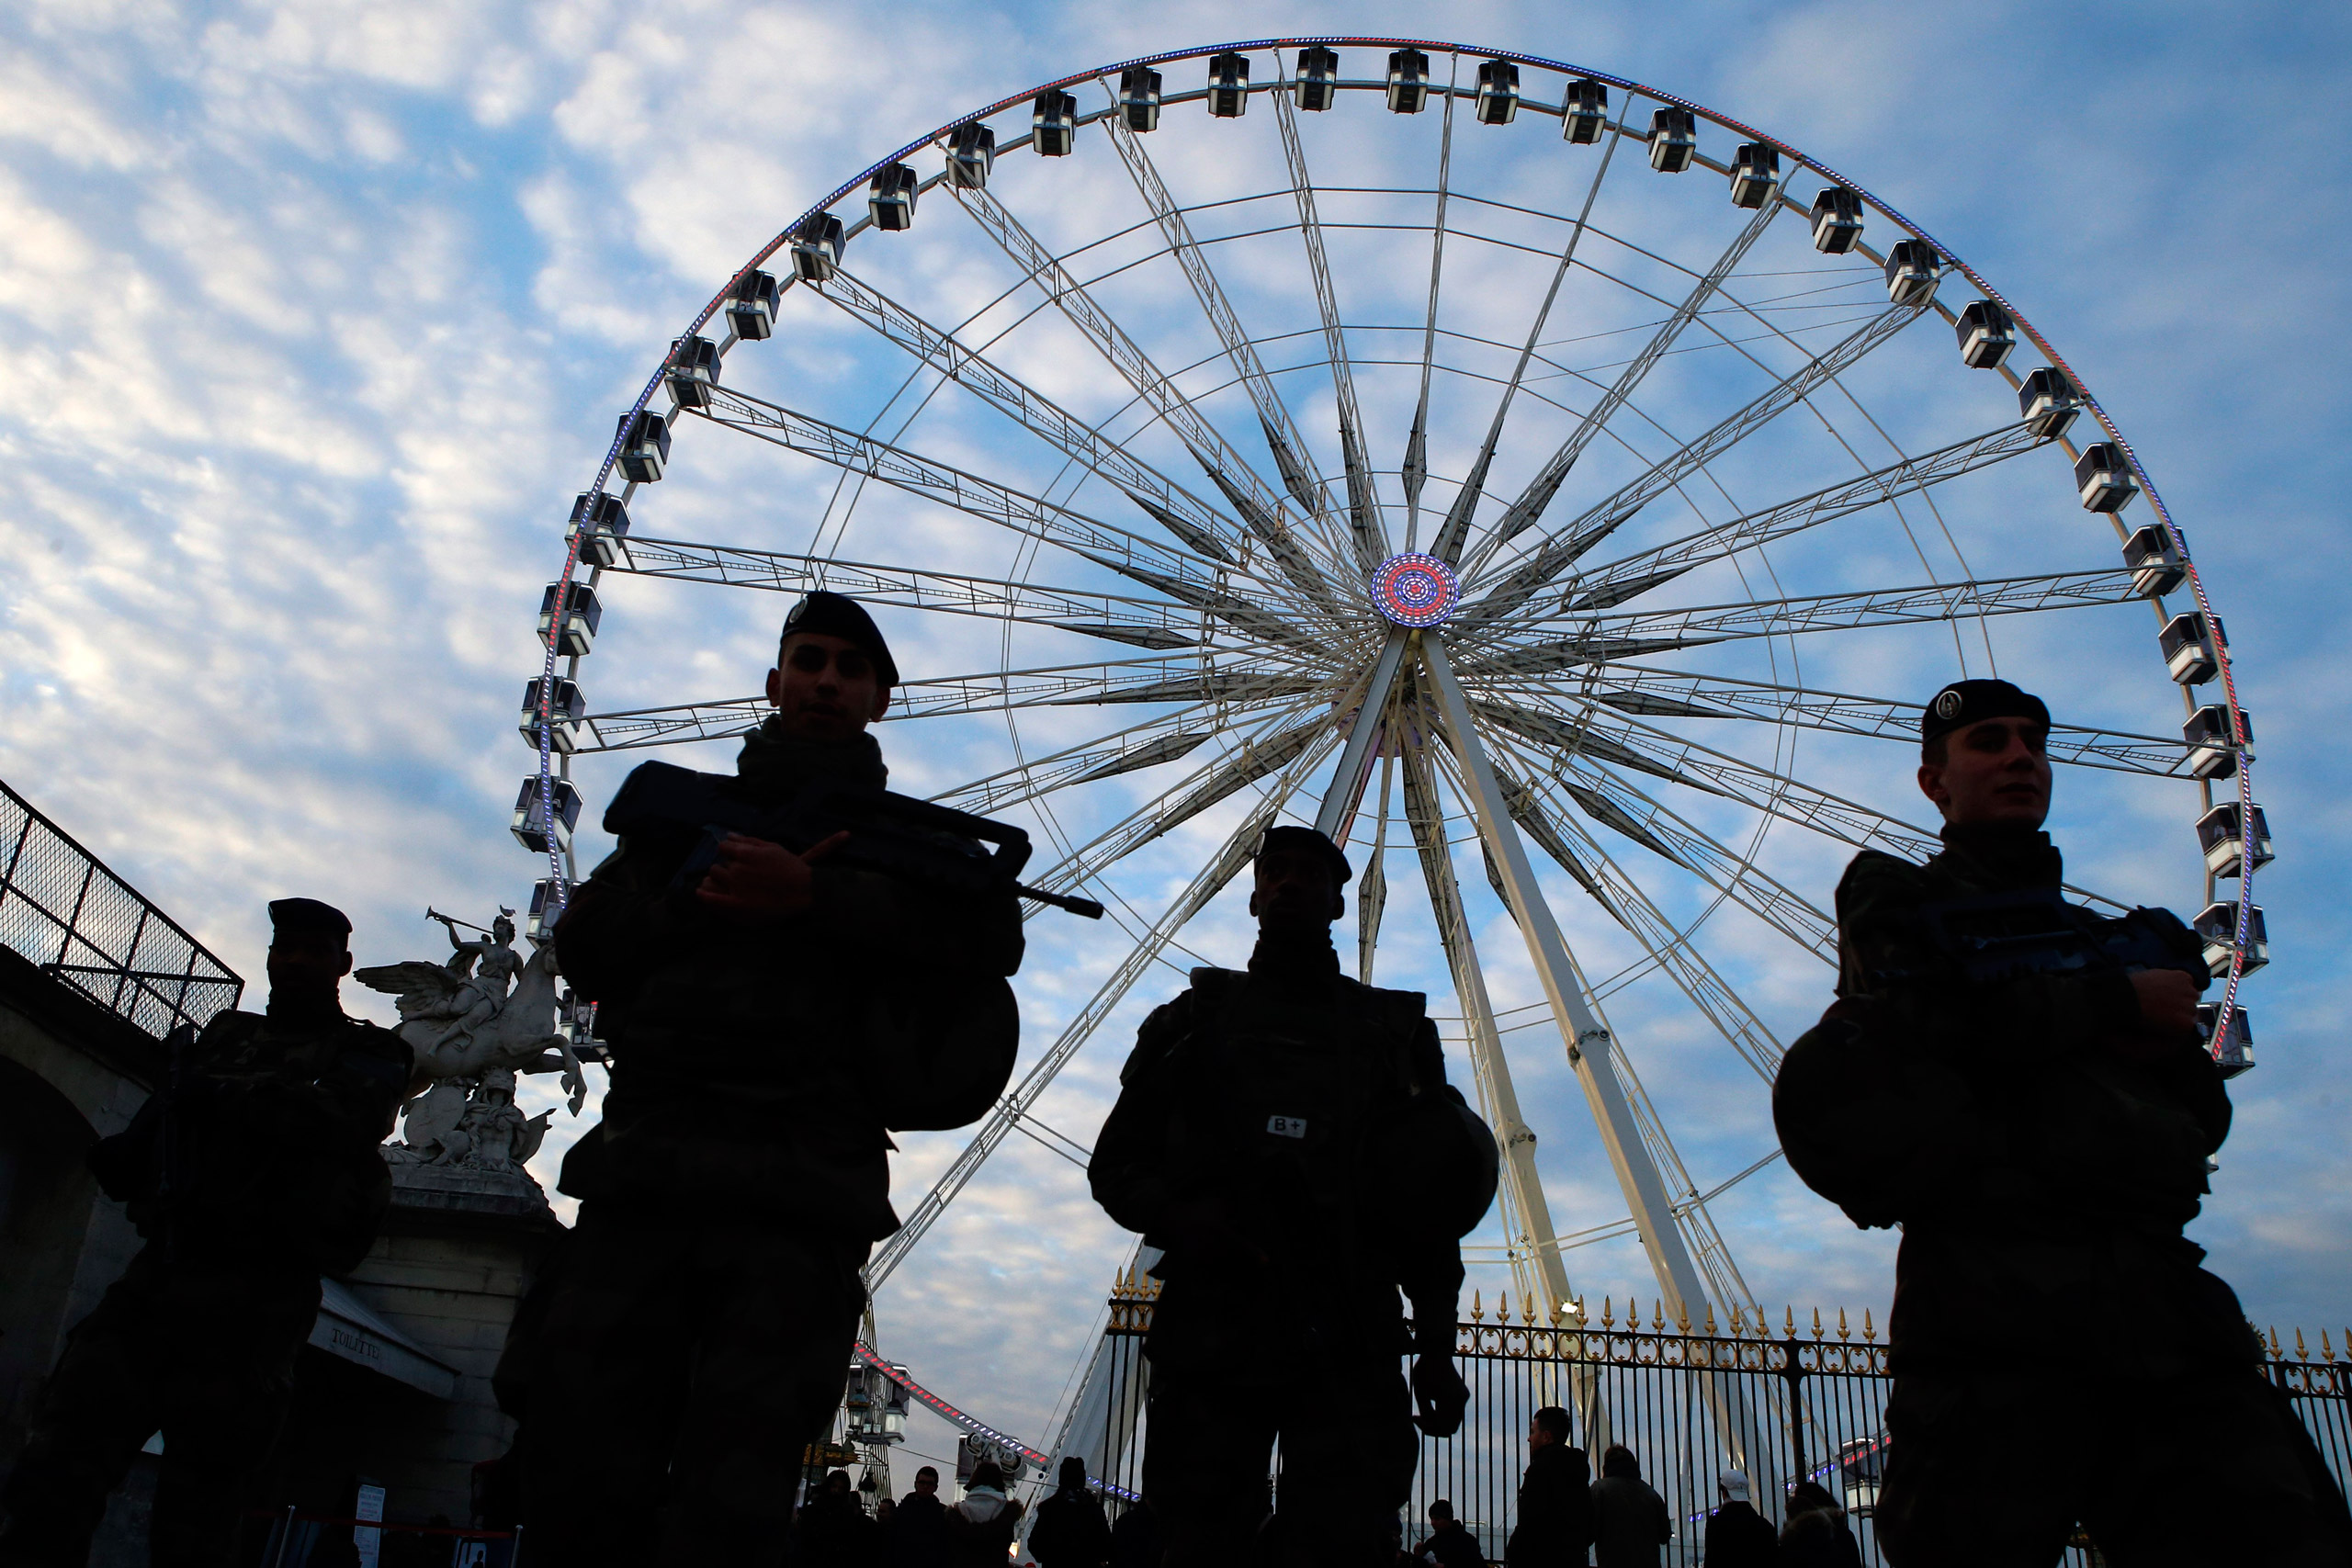 French soldiers patrol in front of the Paris ferris Big Wheel next to the Champs Elysees in Paris on Nov. 22, 2015.